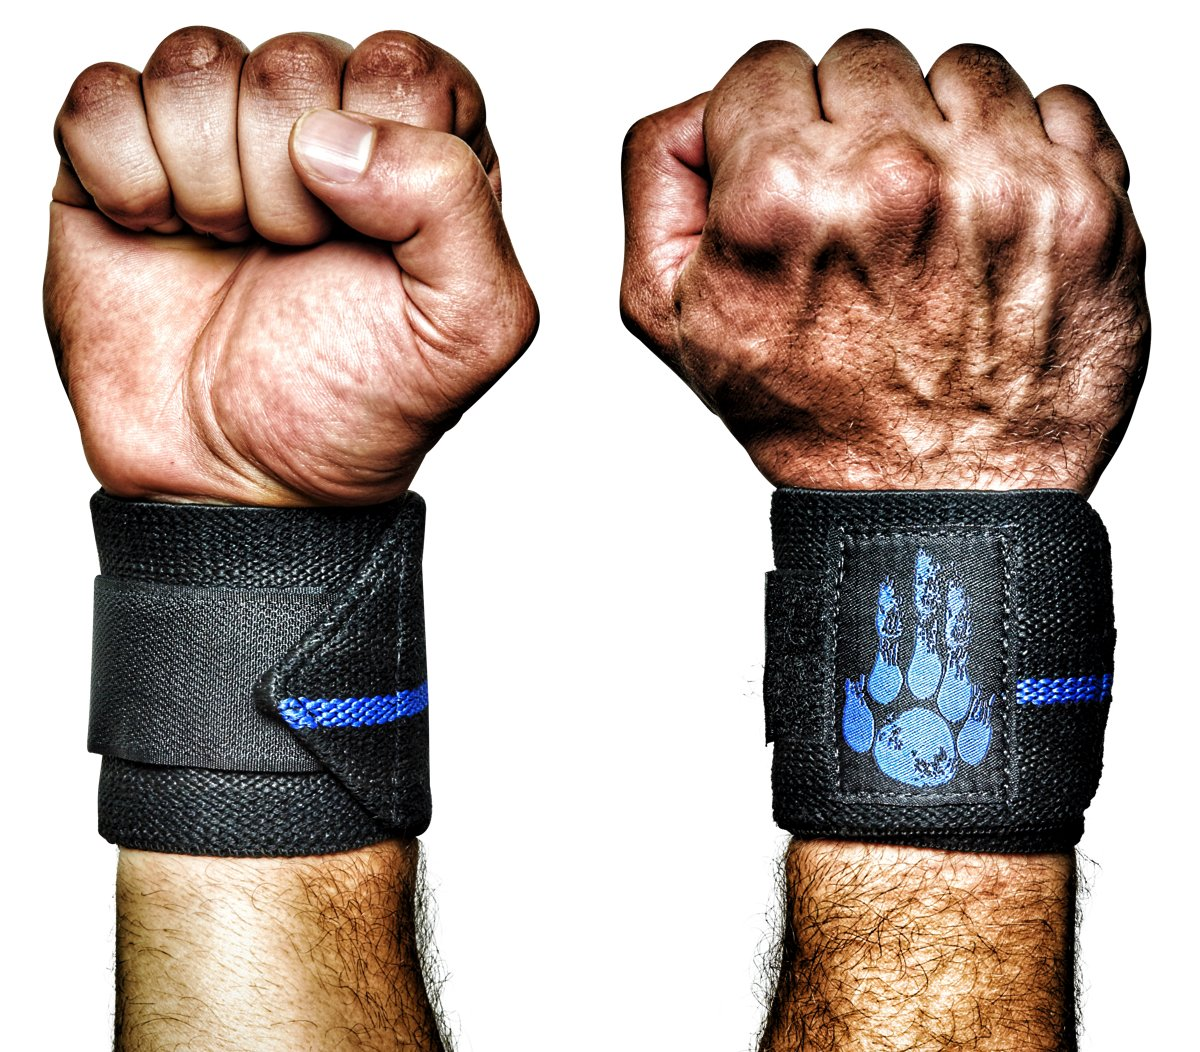 MANIMAL: The Best Weightlifting Straps with Superior Wrist Support, 1 Wrist Wraps Trusted by Professional Powerlifting, Strongman, Crossfit and Olympic Athletes - Thin Blue Line